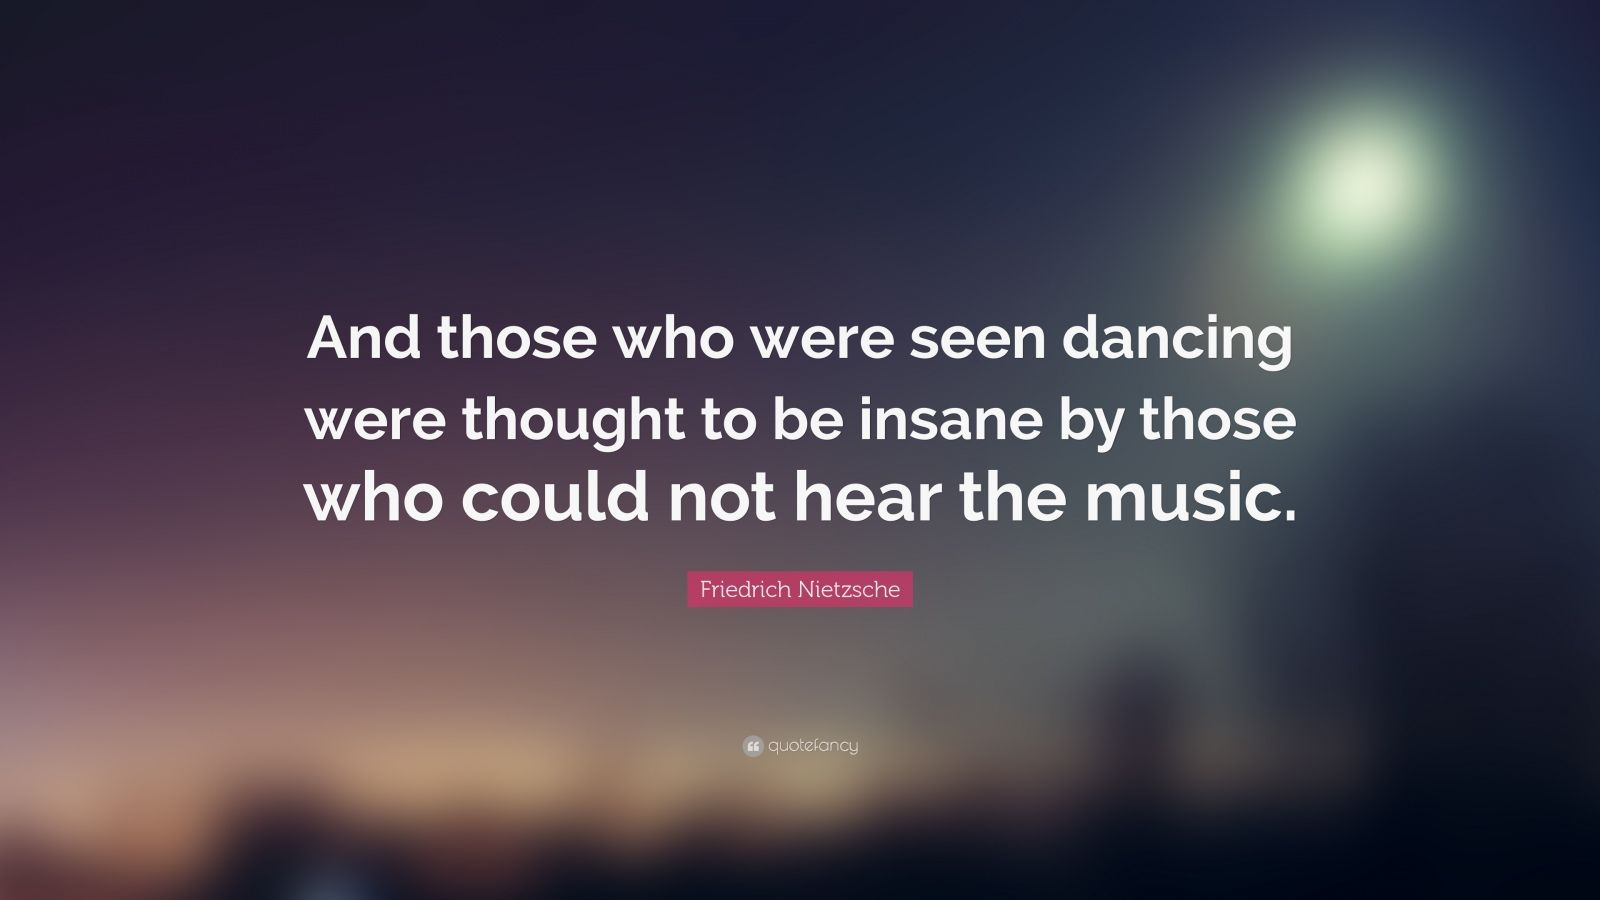 Friedrich Nietzsche Quote And Those Who Were Seen Dancing Were Thought To Be Insane By Those Who Co Elisabeth Elliot Quotes Elisabeth Elliot Nietzsche Quotes